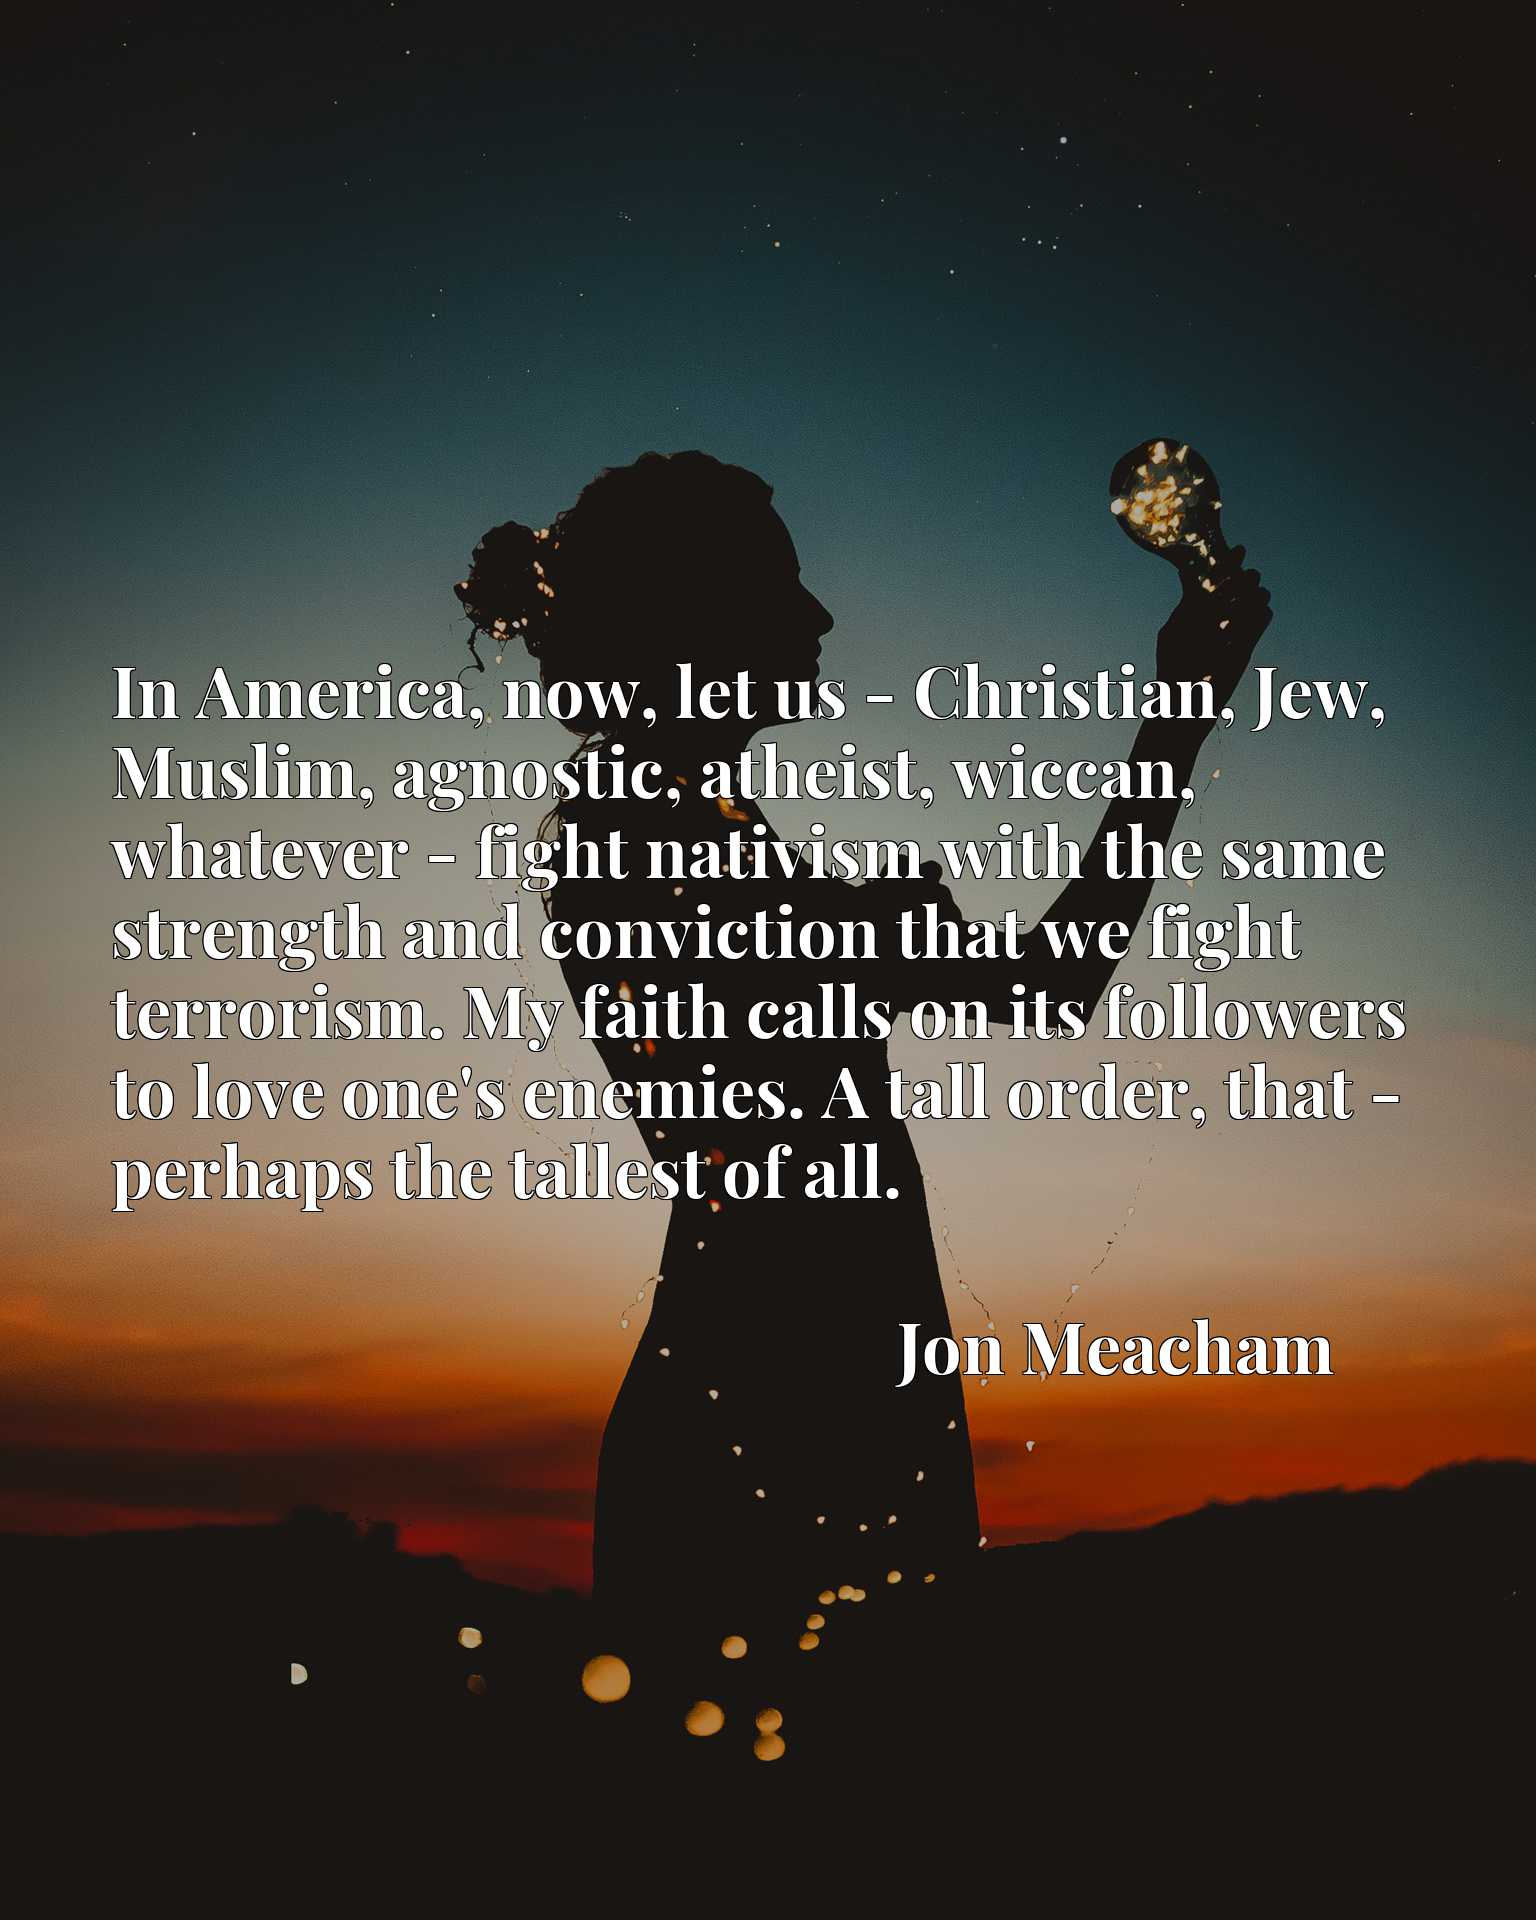 In America, now, let us - Christian, Jew, Muslim, agnostic, atheist, wiccan, whatever - fight nativism with the same strength and conviction that we fight terrorism. My faith calls on its followers to love one's enemies. A tall order, that - perhaps the tallest of all.